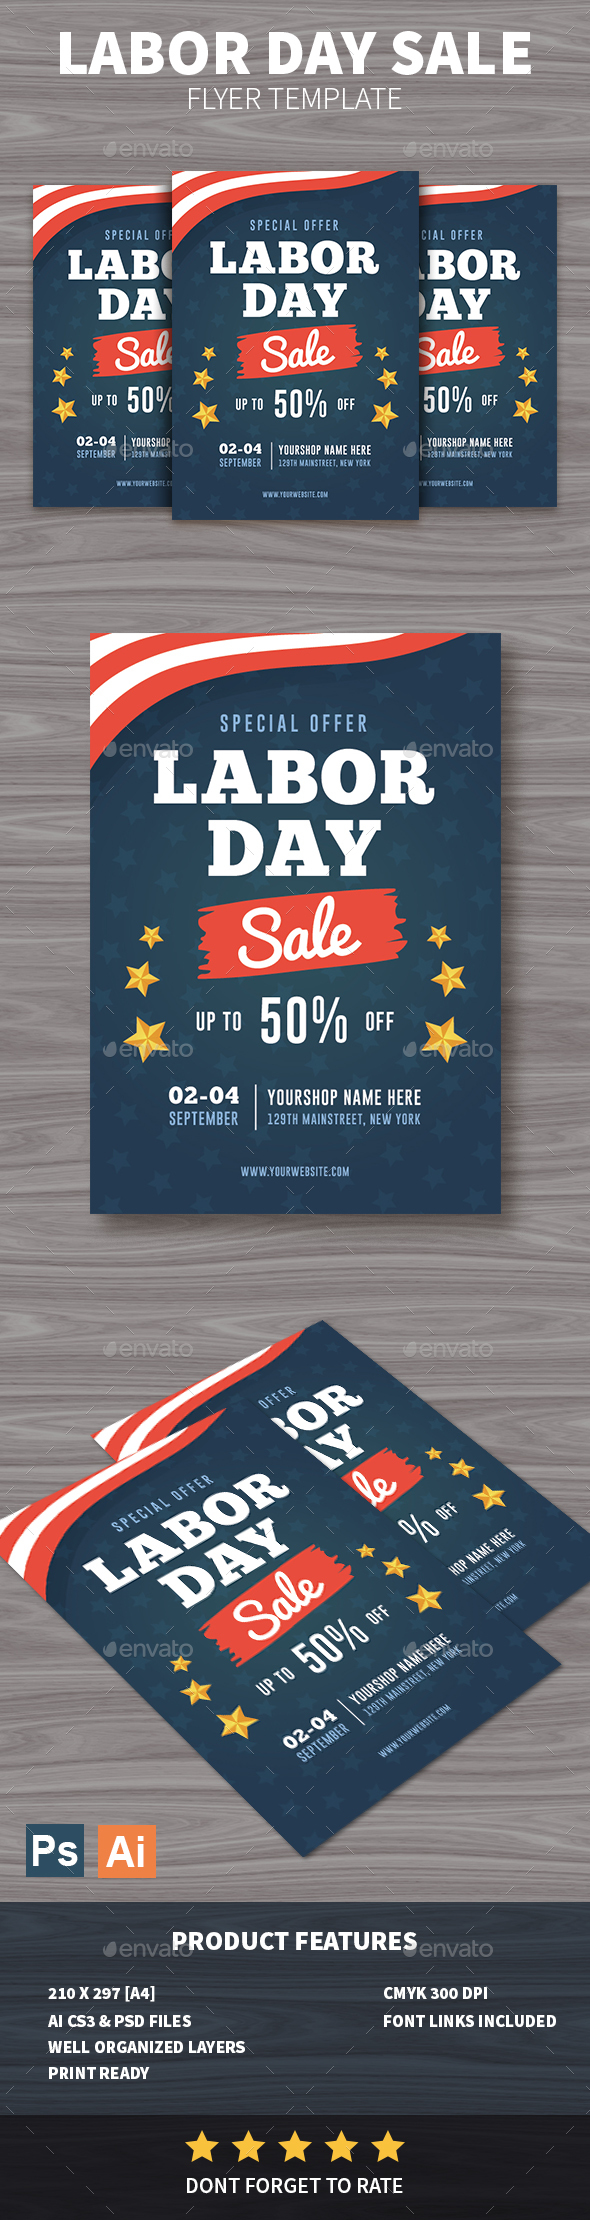 GraphicRiver Labor Day Sale Flyer 20498990